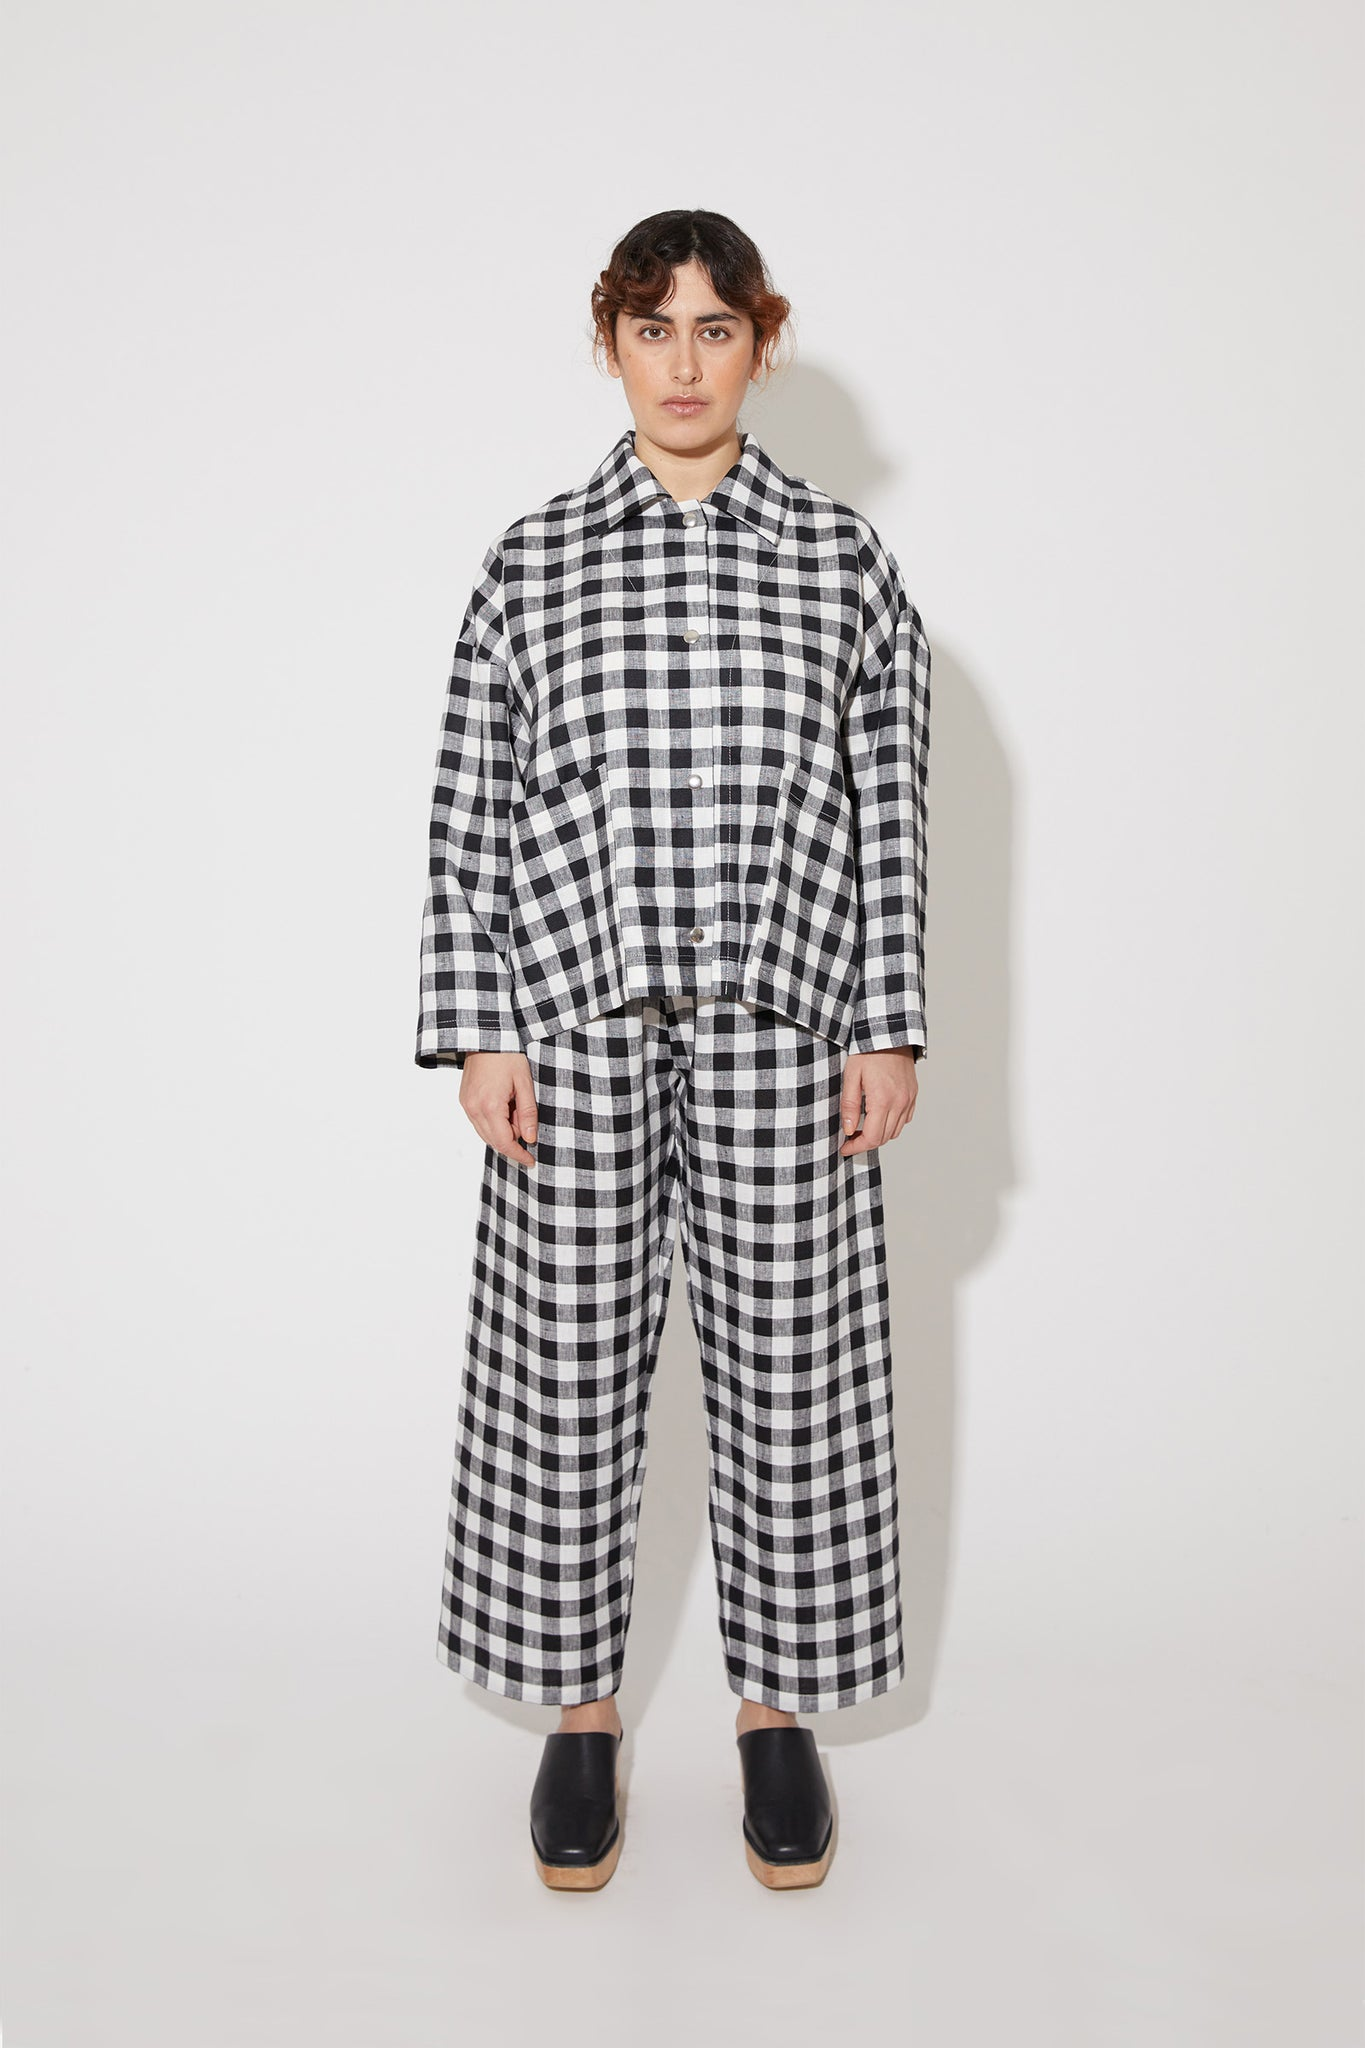 Tove jacket in black-white gingham linen